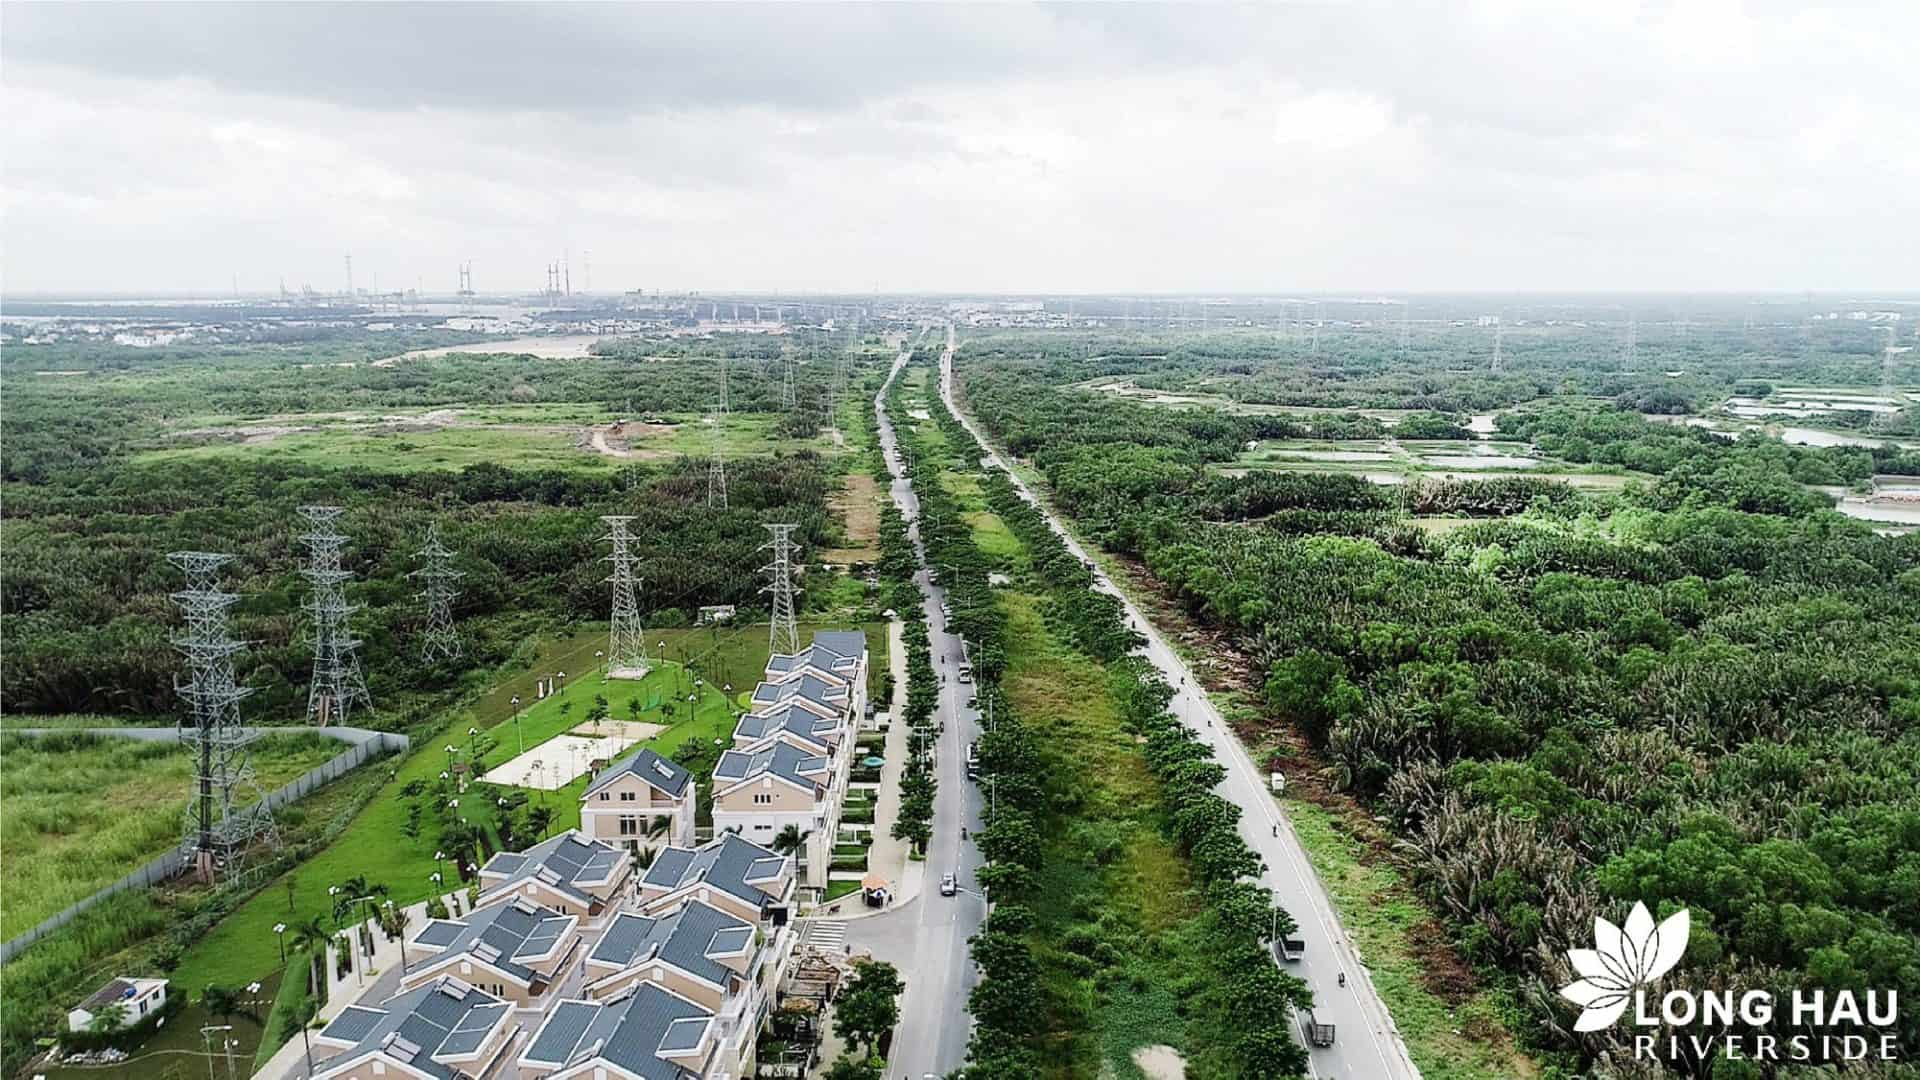 du an long hau riverside 7 - Dự án Long Hậu Riverside